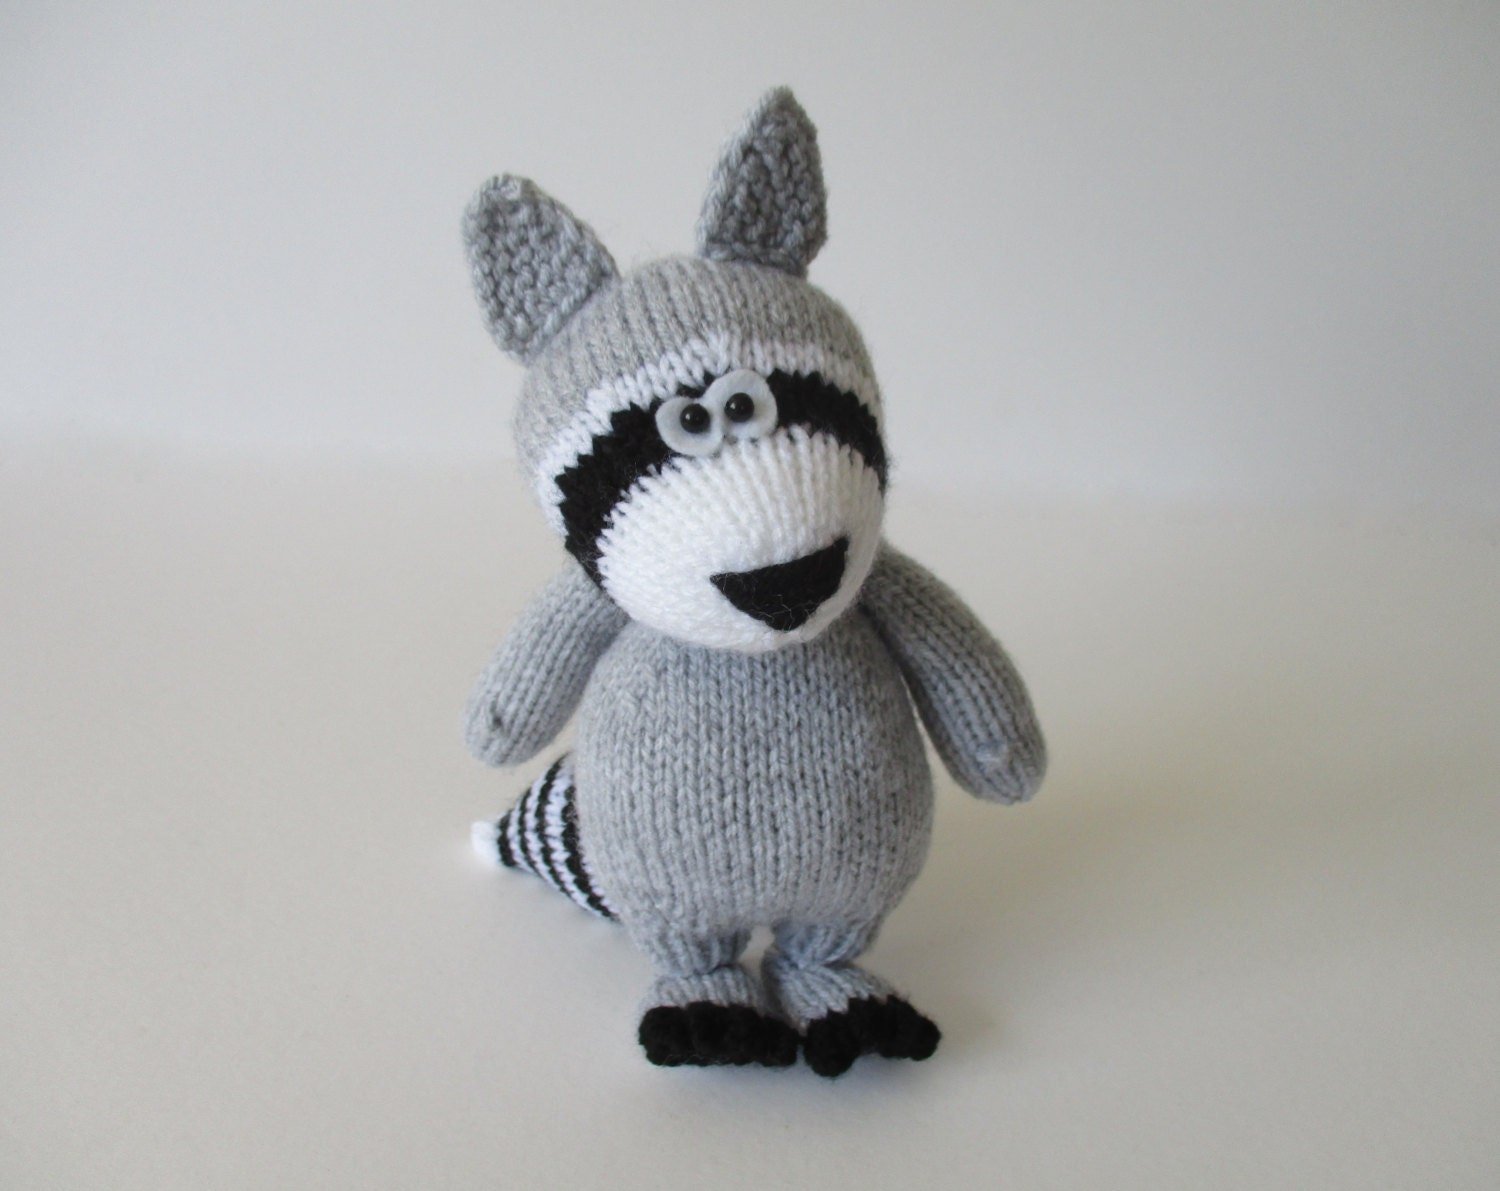 Ricky the Raccoon toy knitting patterns